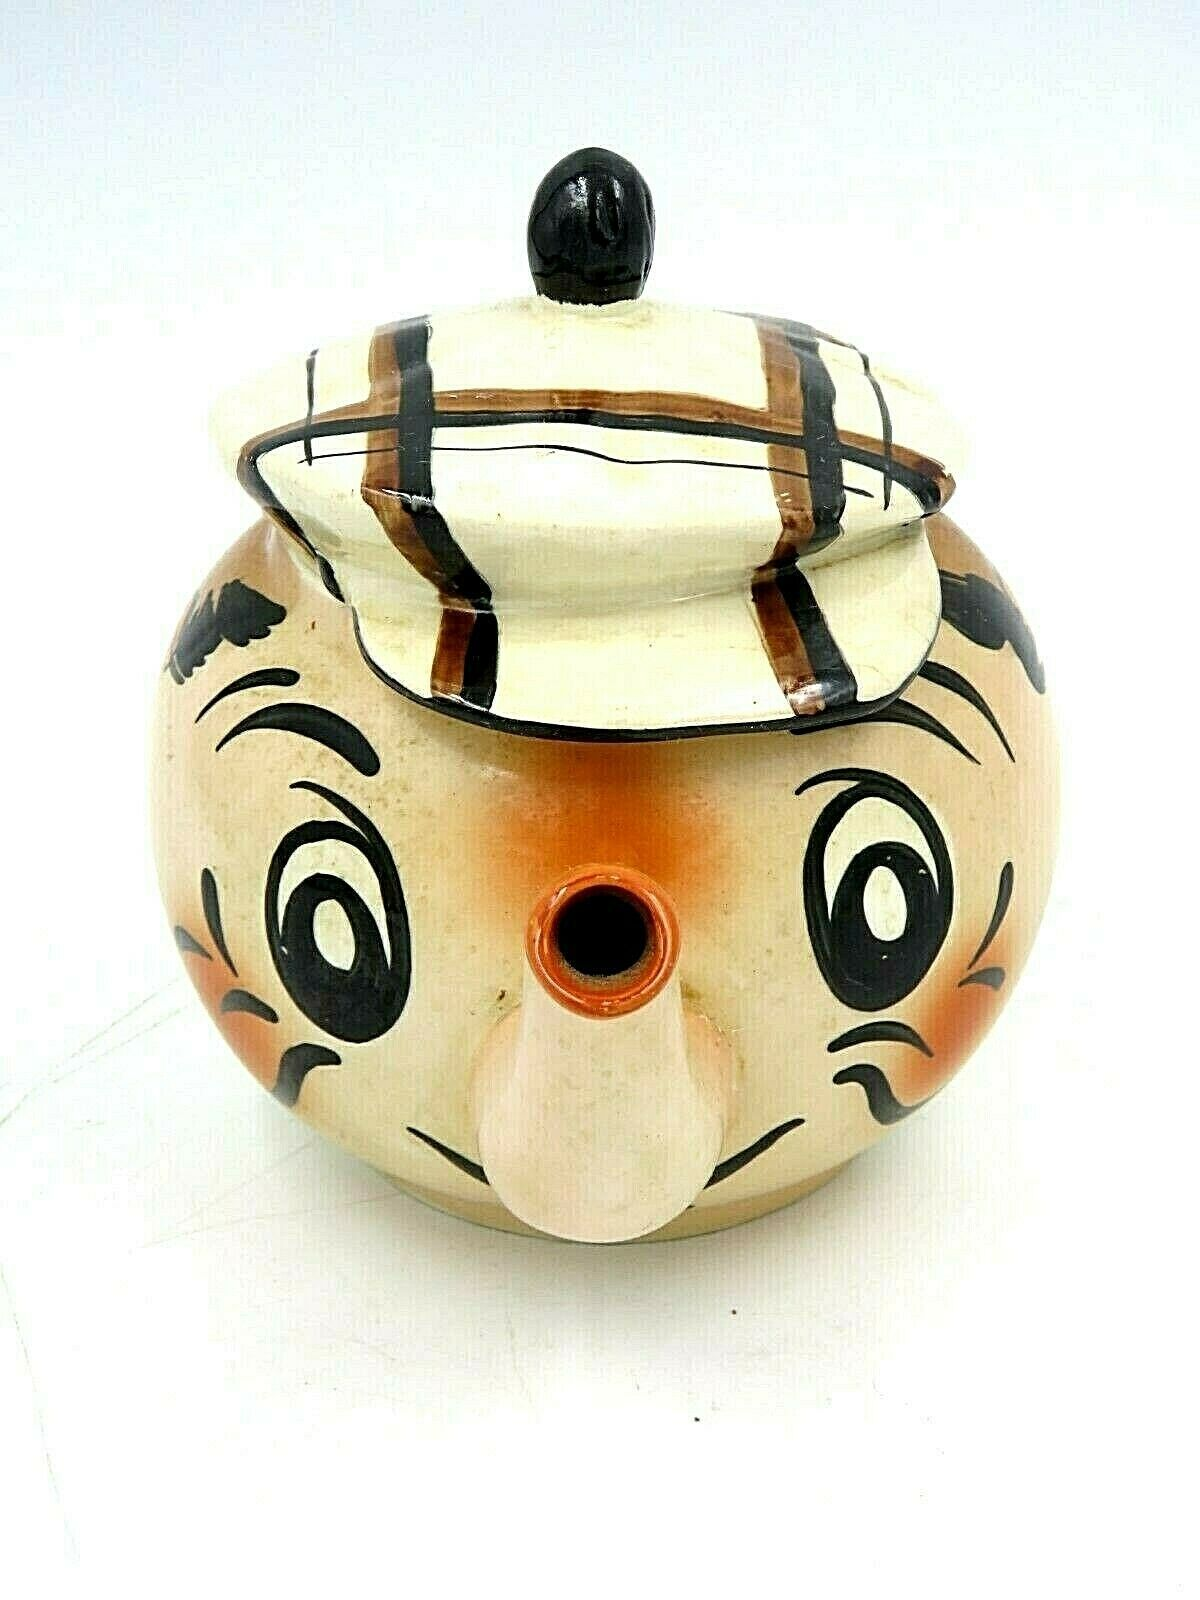 Vintage Wade Hand Painted Ceramic Teapot - Andy Capp Golf Caddy - $14.80